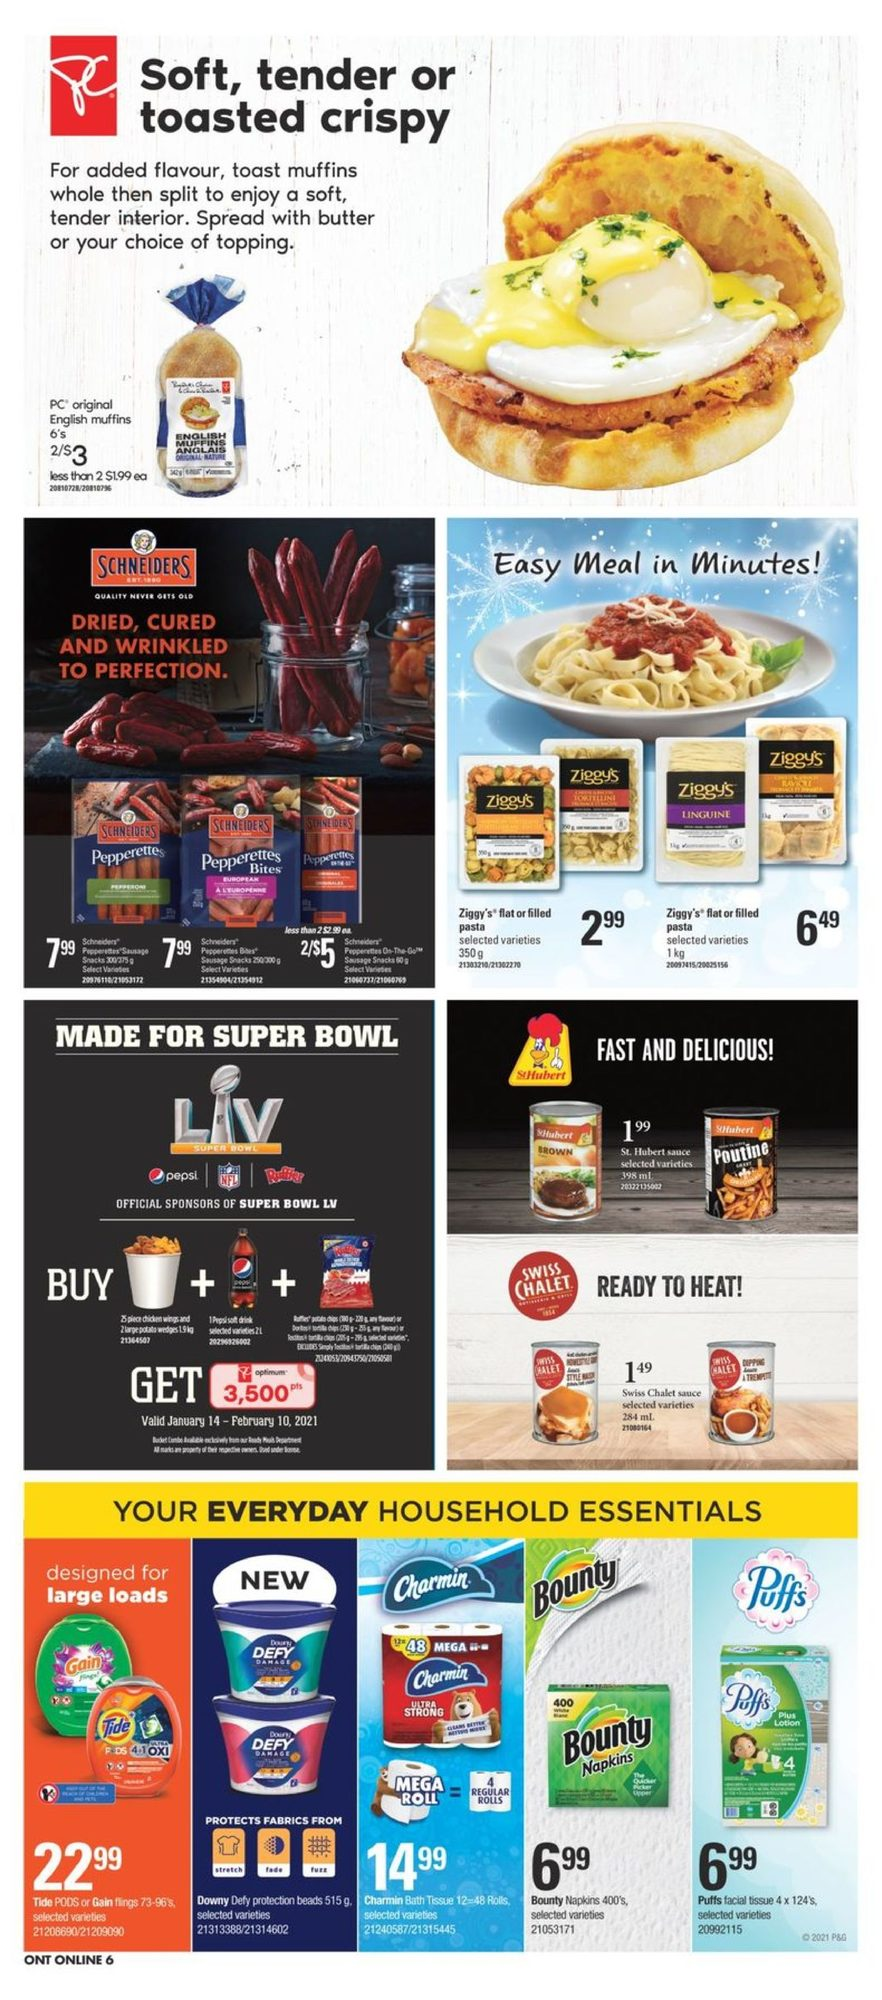 Independent - Weekly Flyer Specials - Page 17